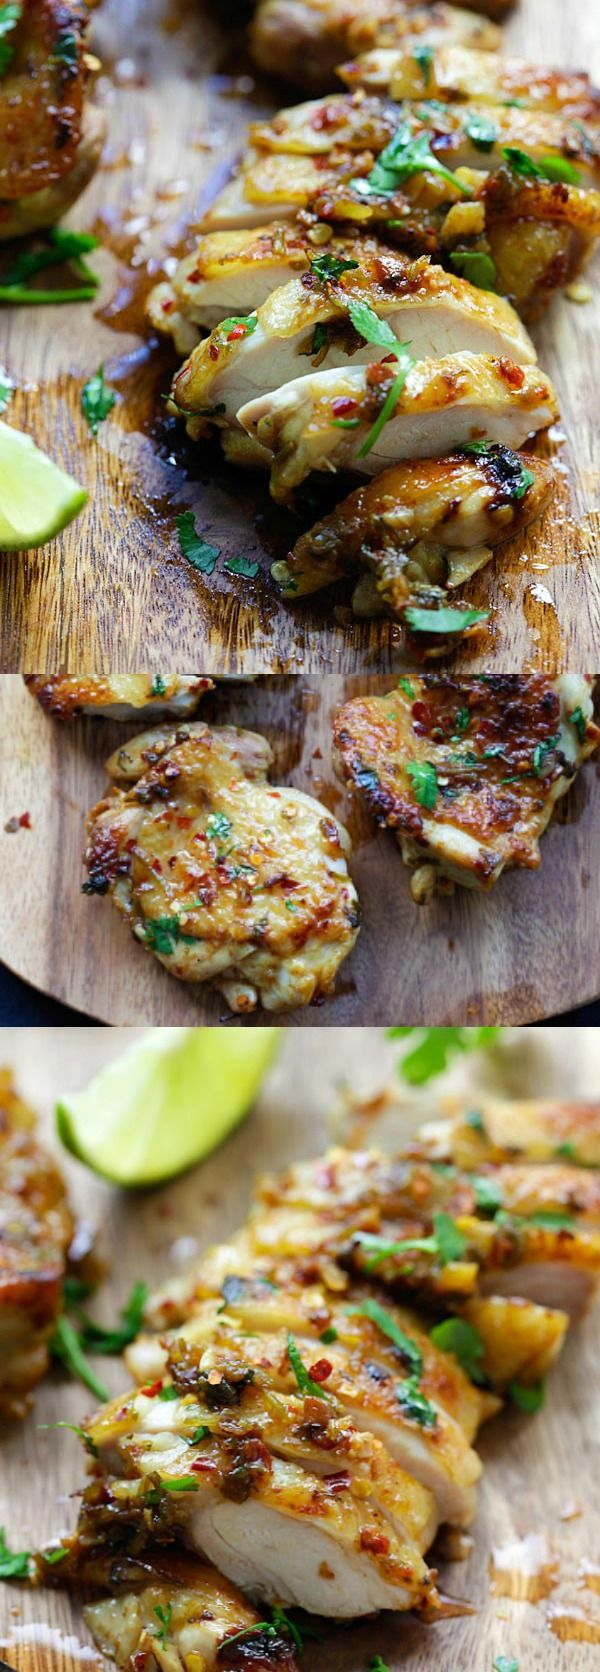 Cilantro Lime Chicken – juicy, moist chicken marinated with cilantro, lime and garlic. Pan-fry, bake or grill the chicken with this easy recipe | rasamalaysia.com